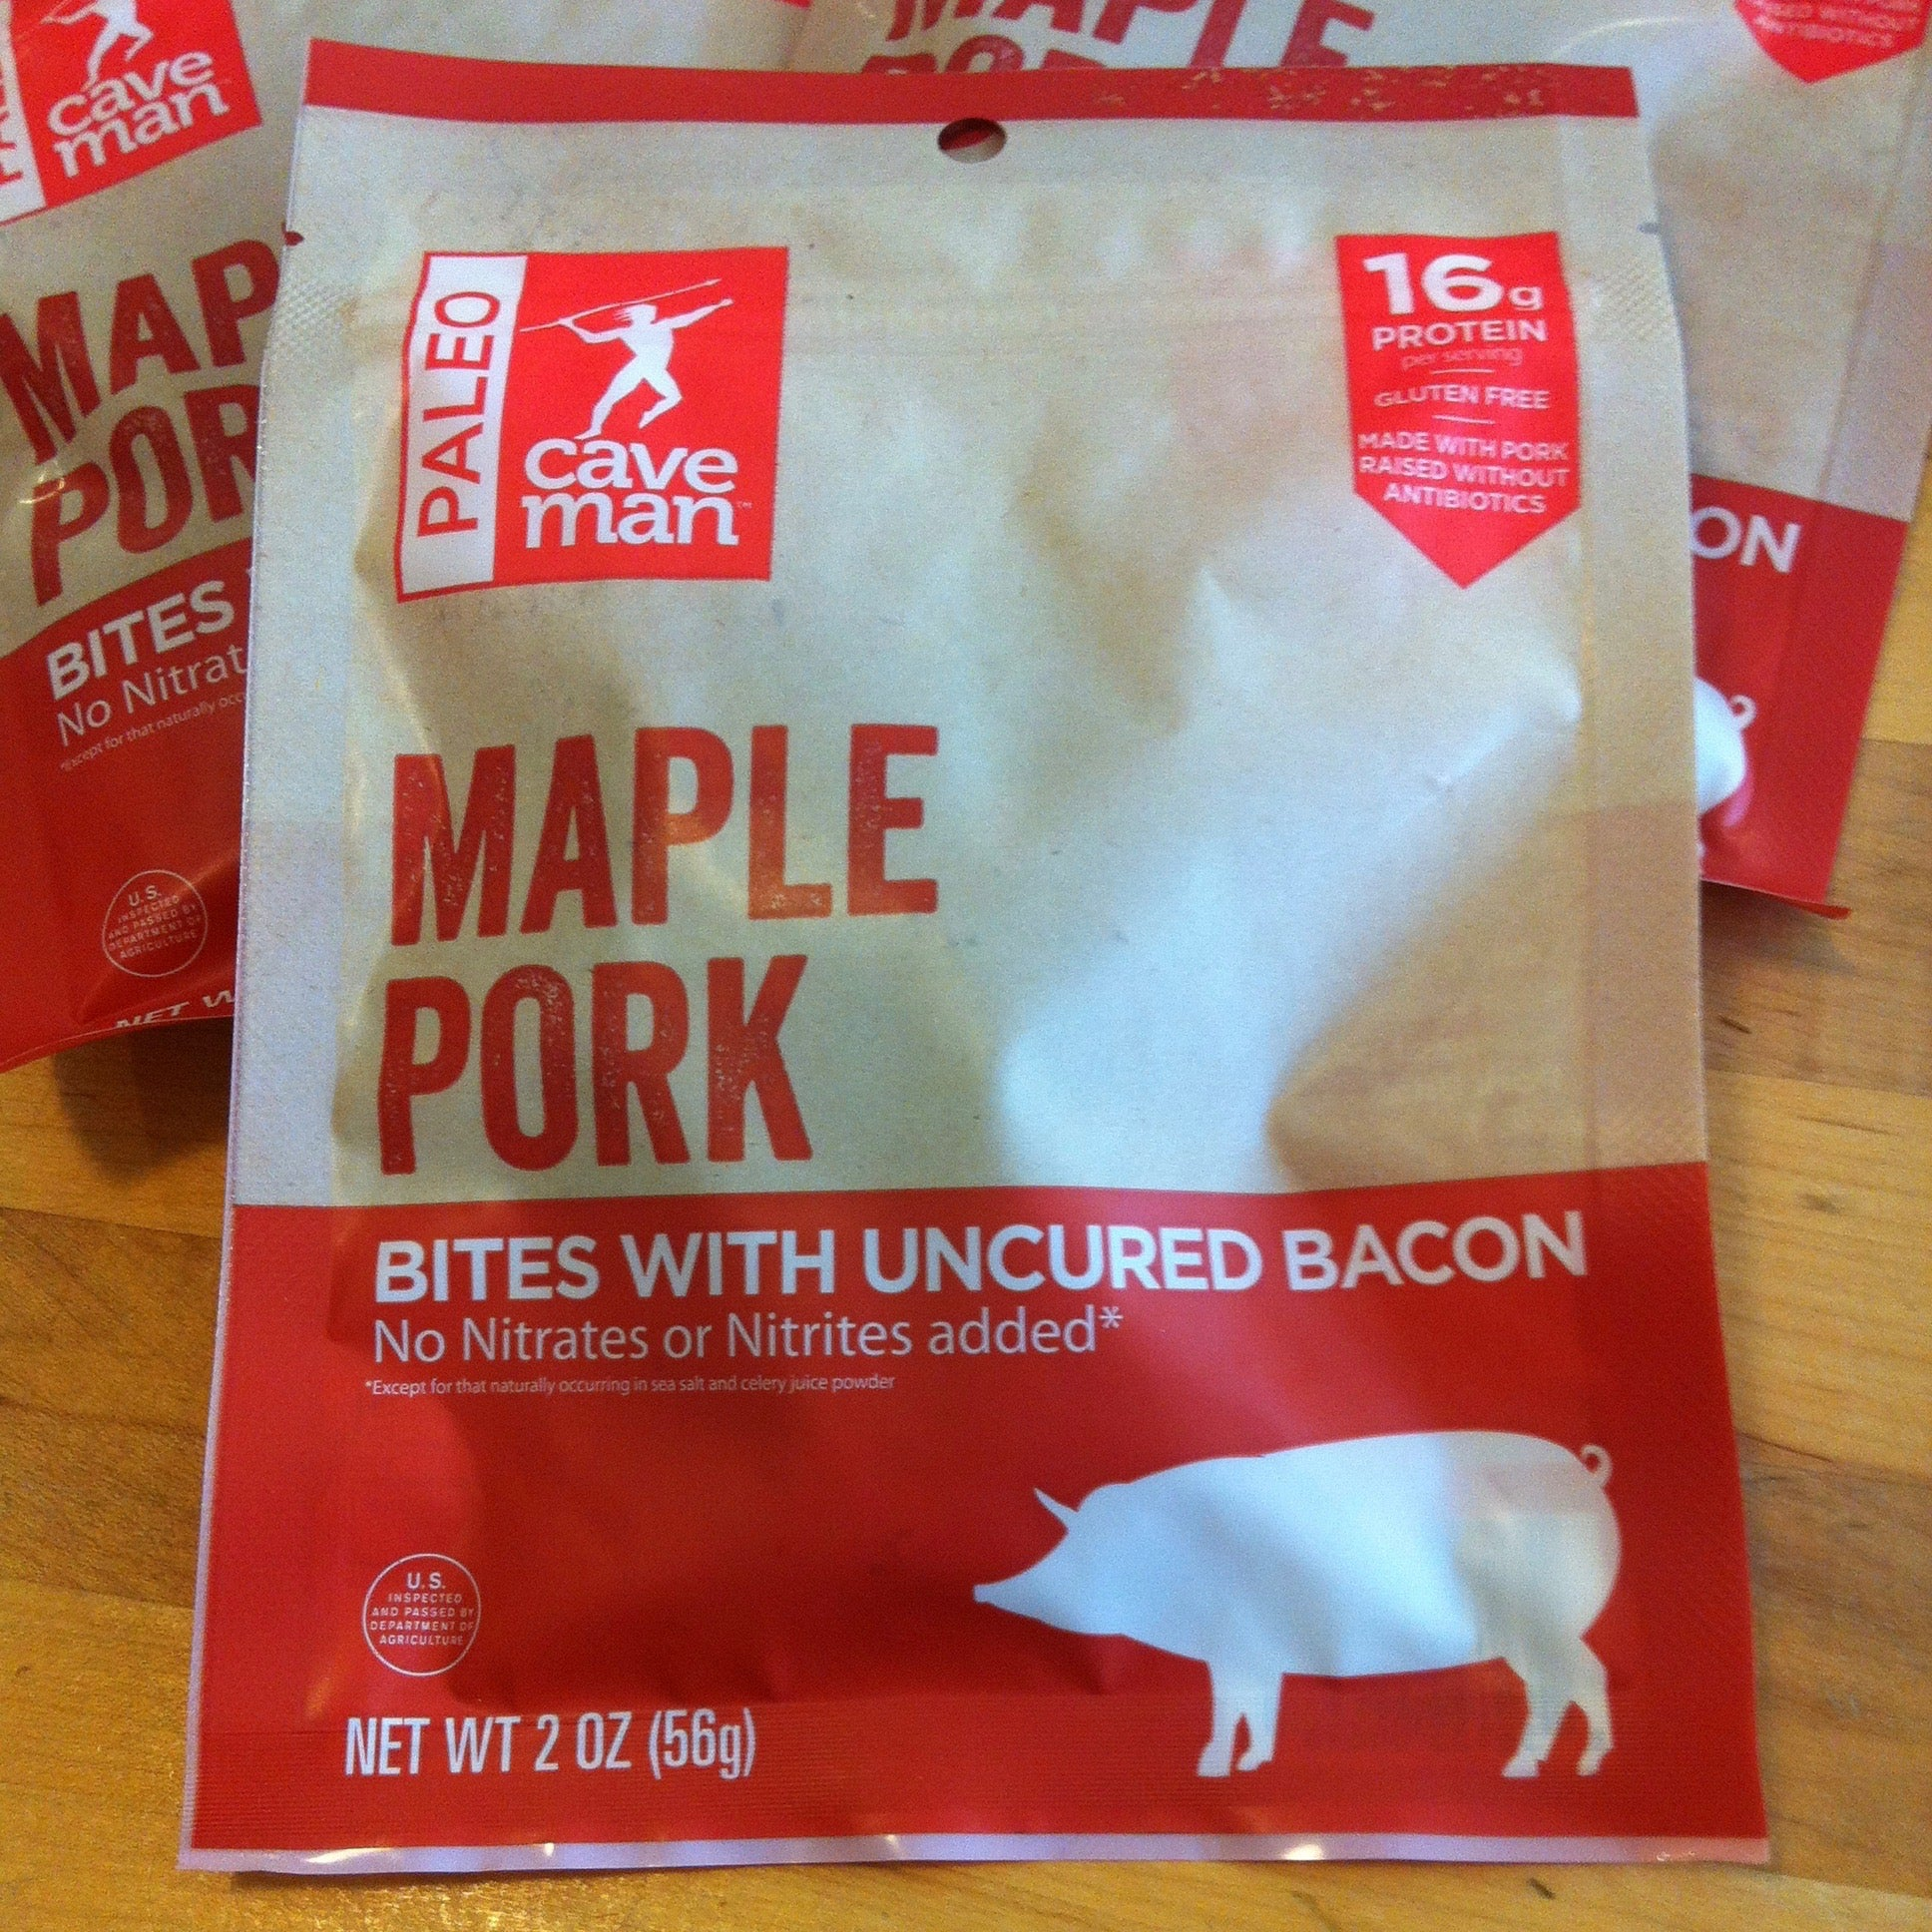 Maple Pork Bites